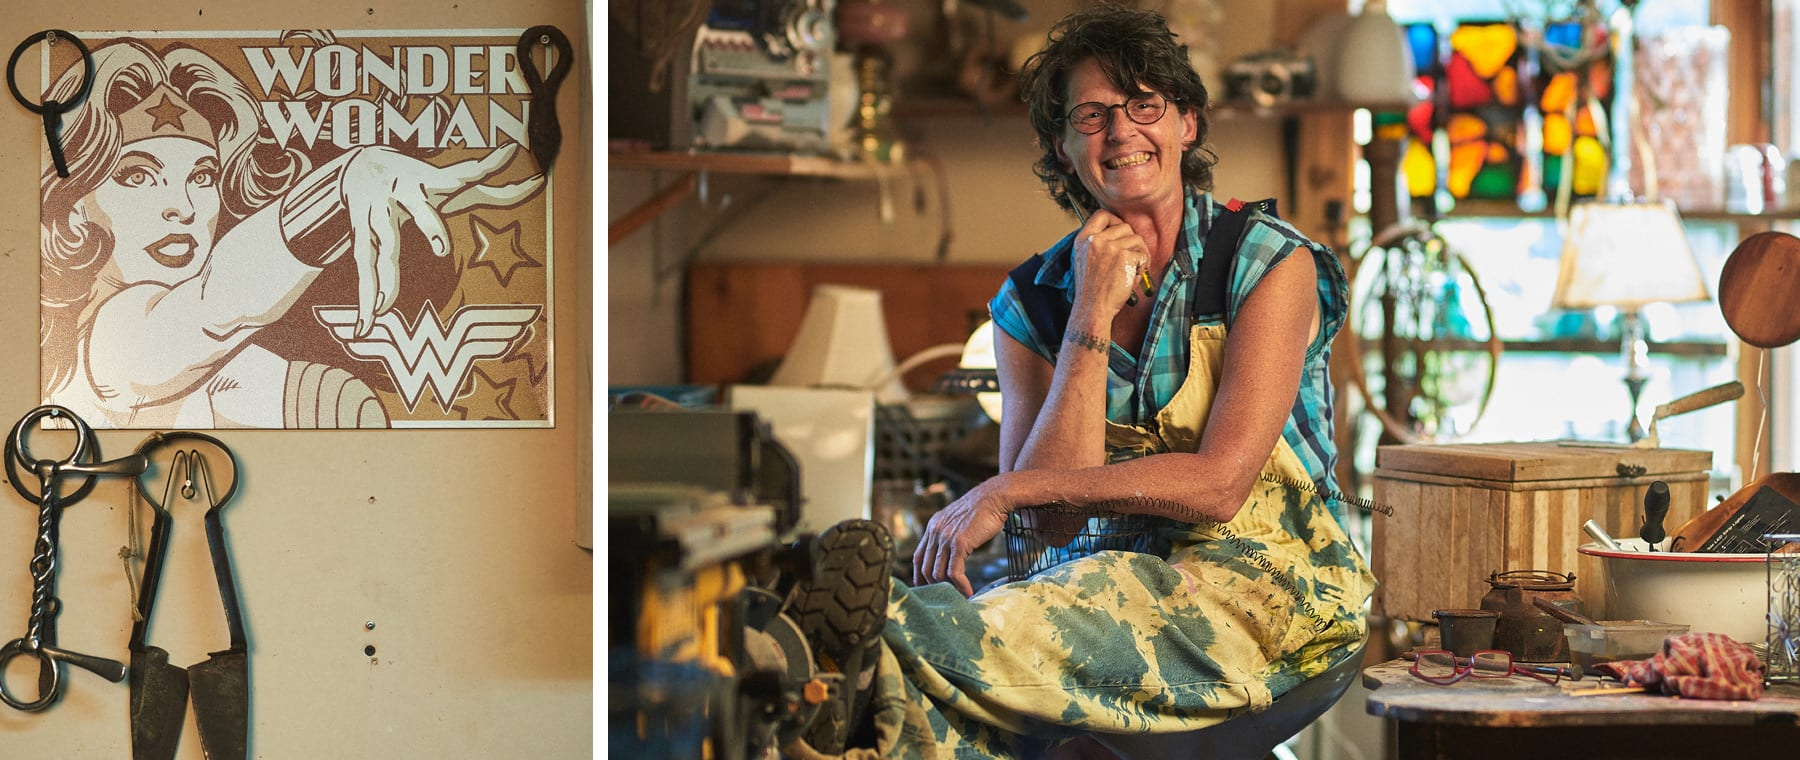 """I can do it or I can show you how"" — Wanda Wommin empowers others through home renos"